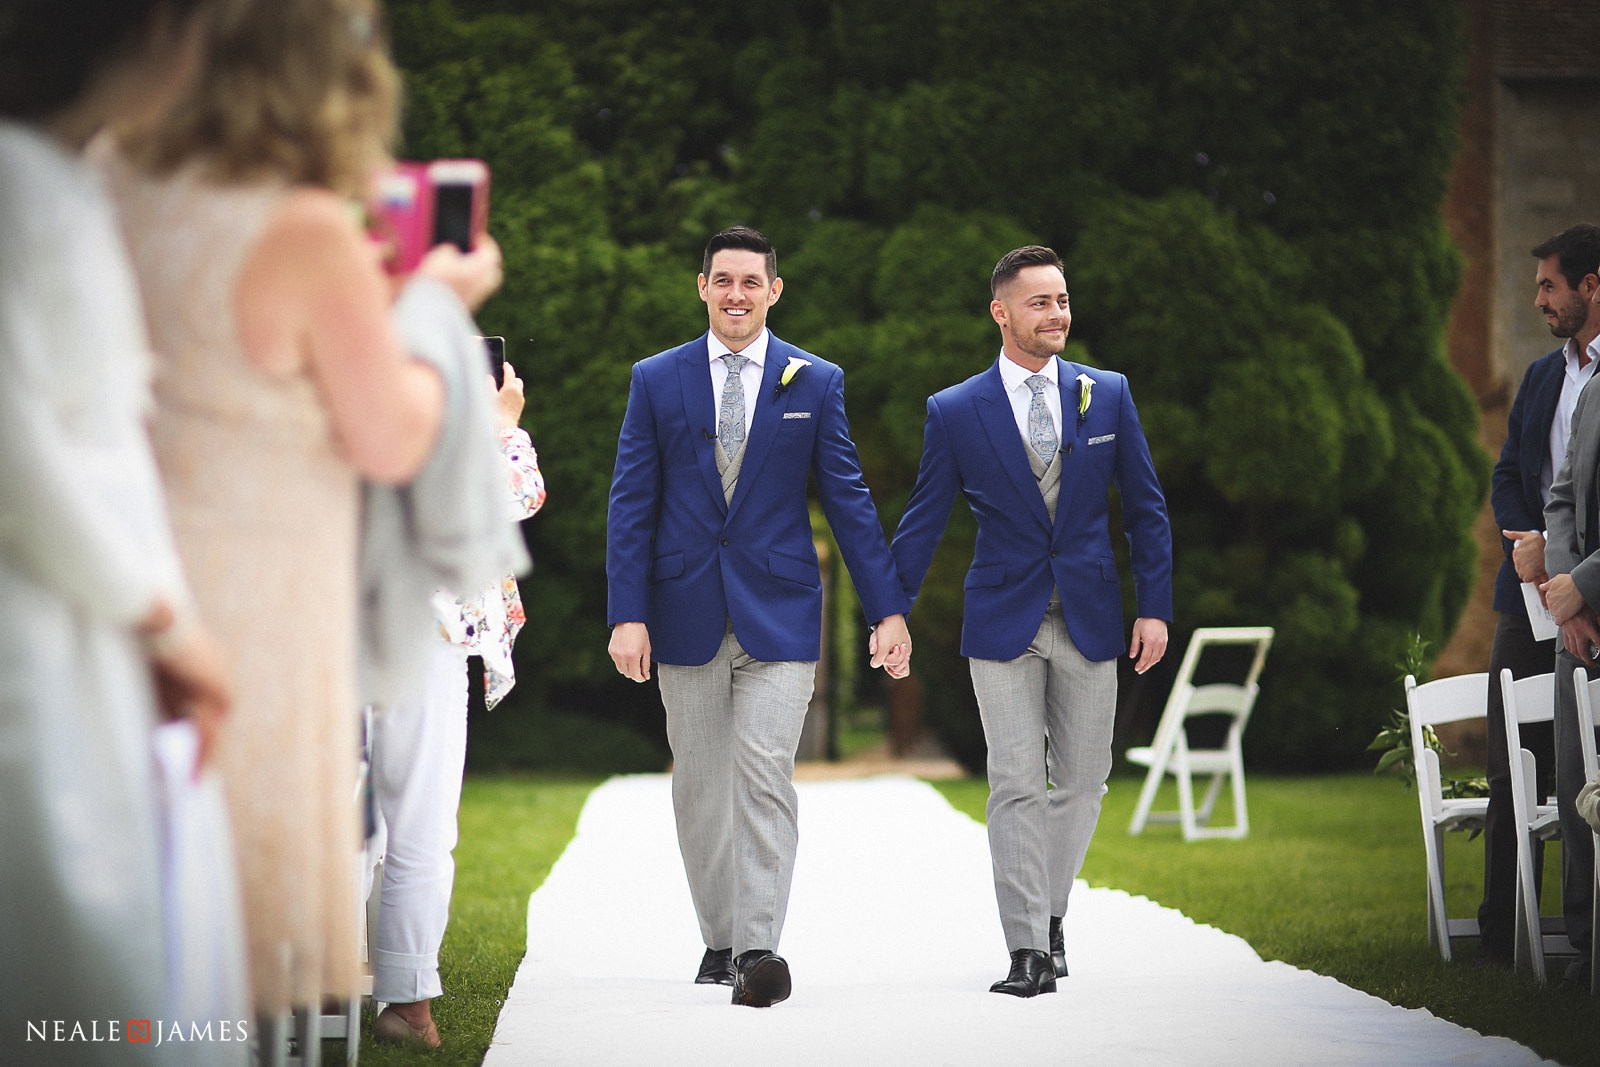 Two grooms in blue jackets and grey trousers walk down the aisle at their summer wedding ceremony at Notley Abbey